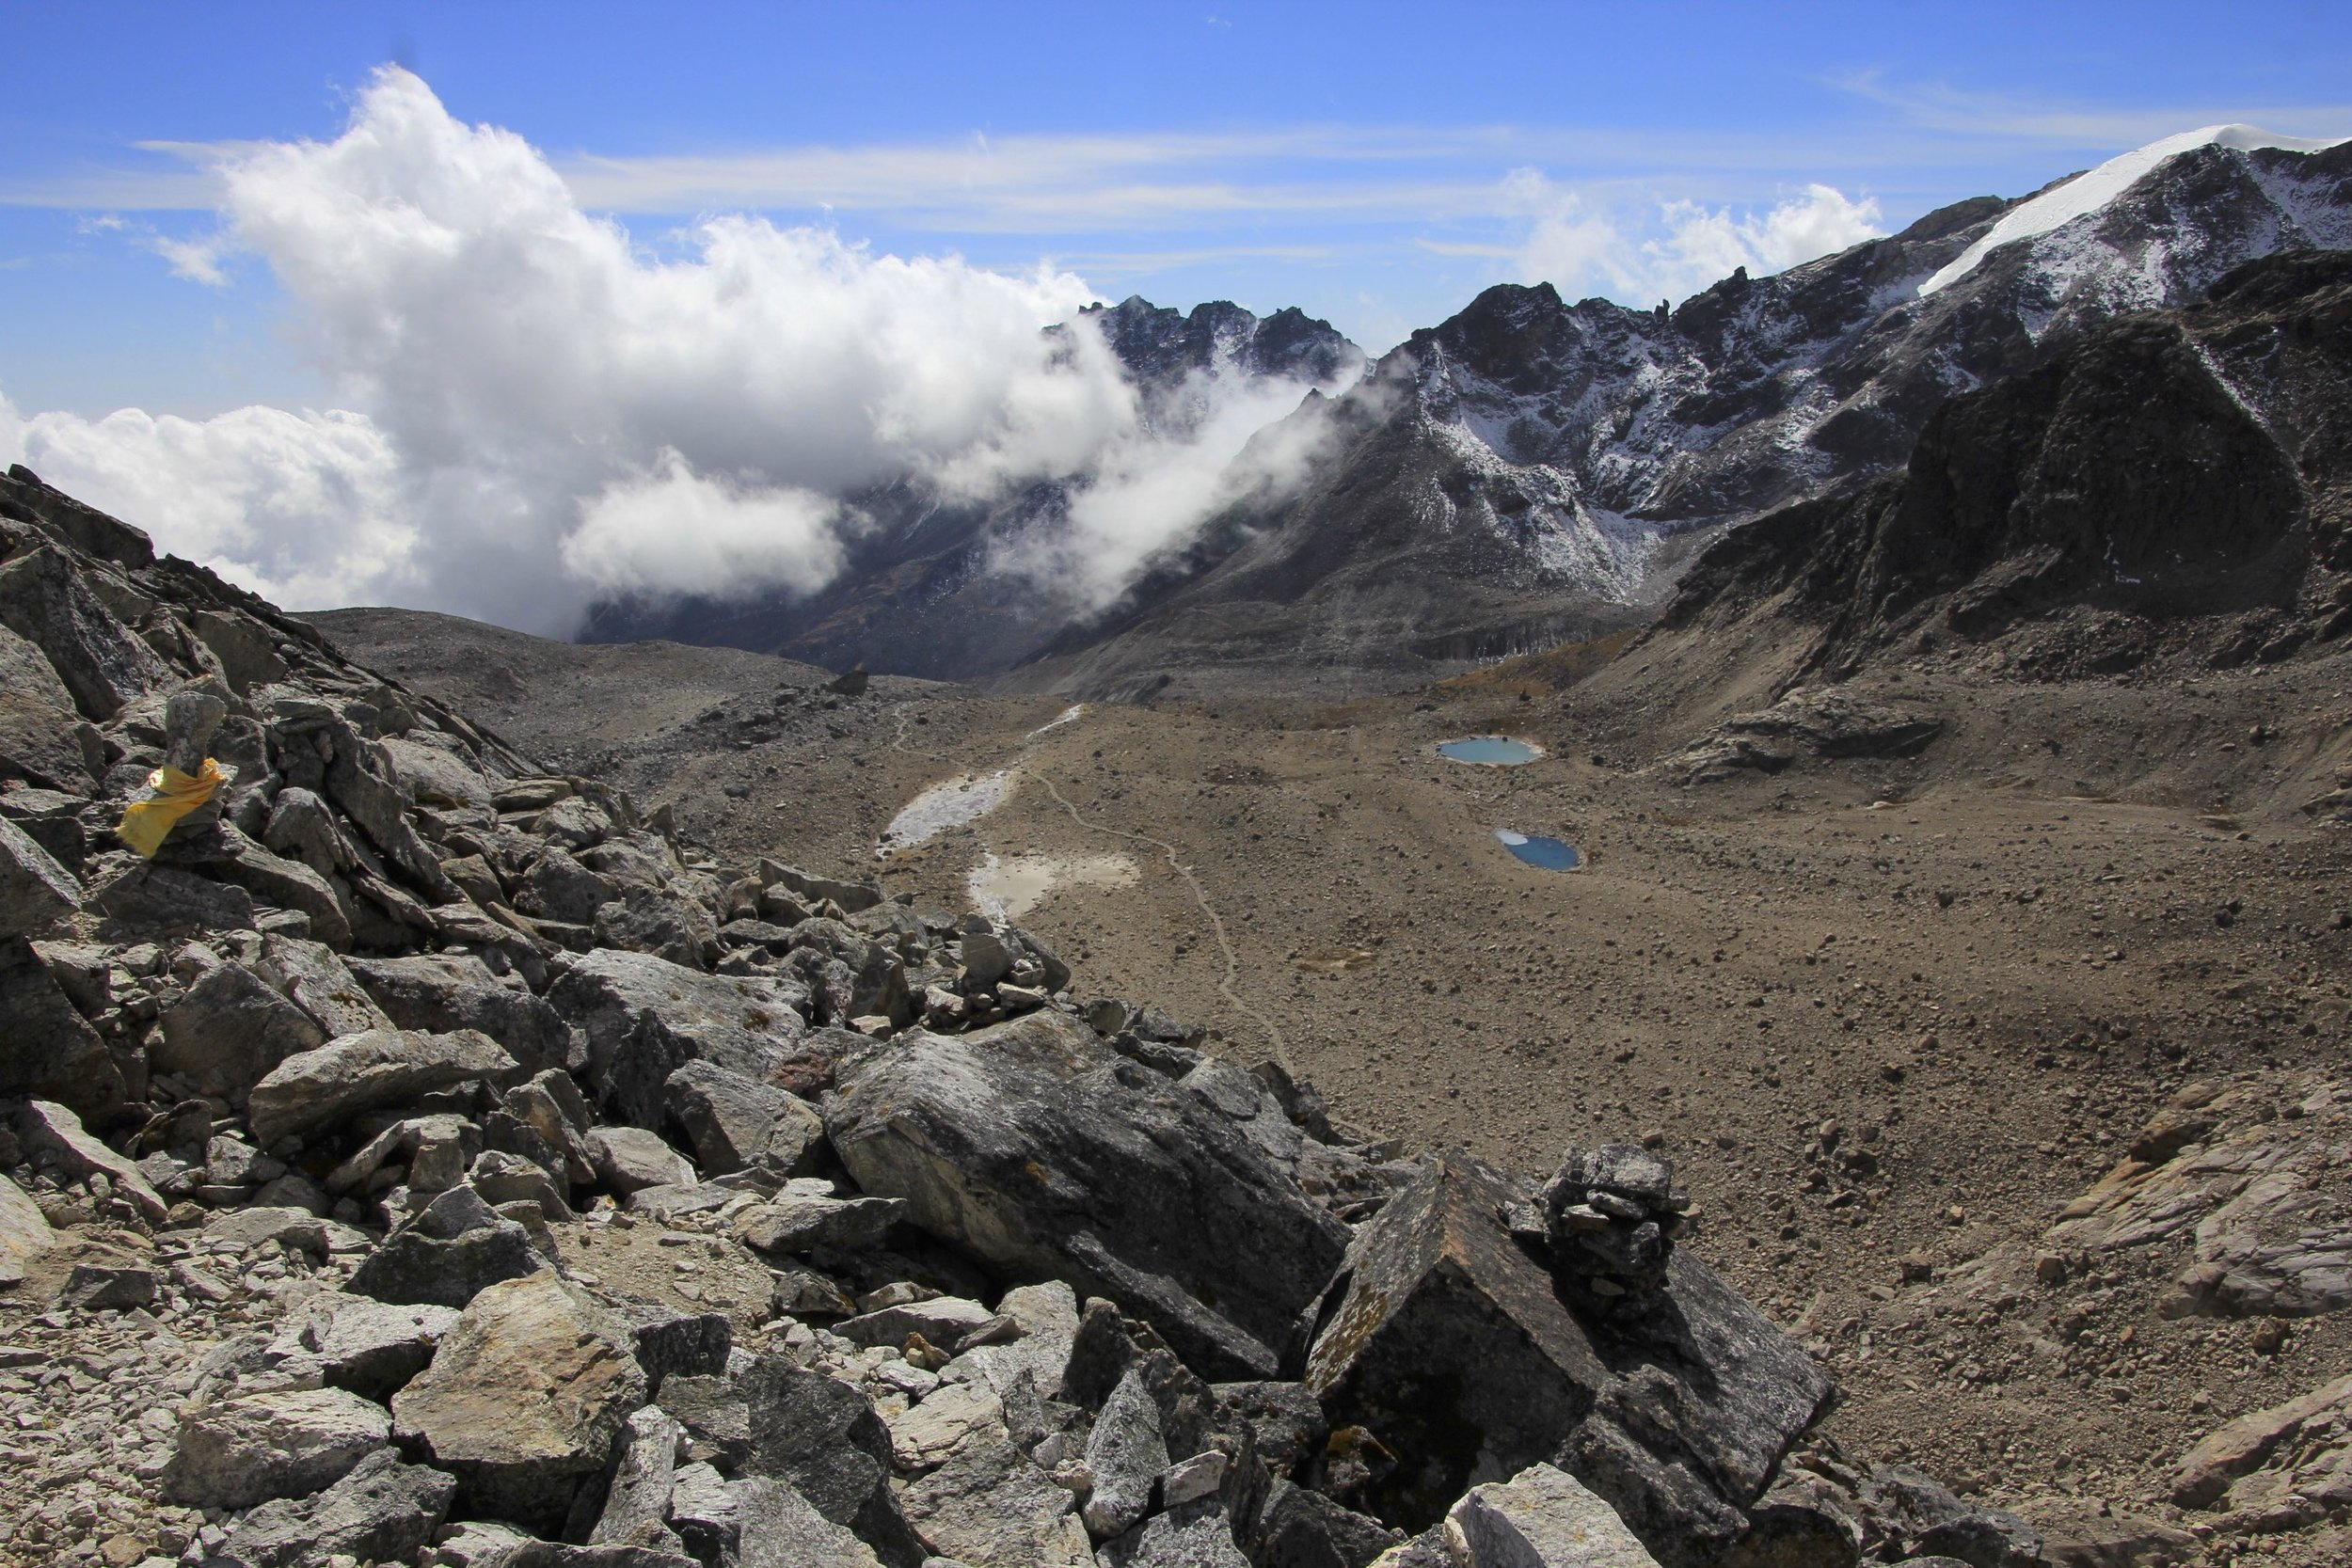 Looking south from Ganjala Pass. The south high camp is located by the two small lakes below at an altitude of approx 5,000m.